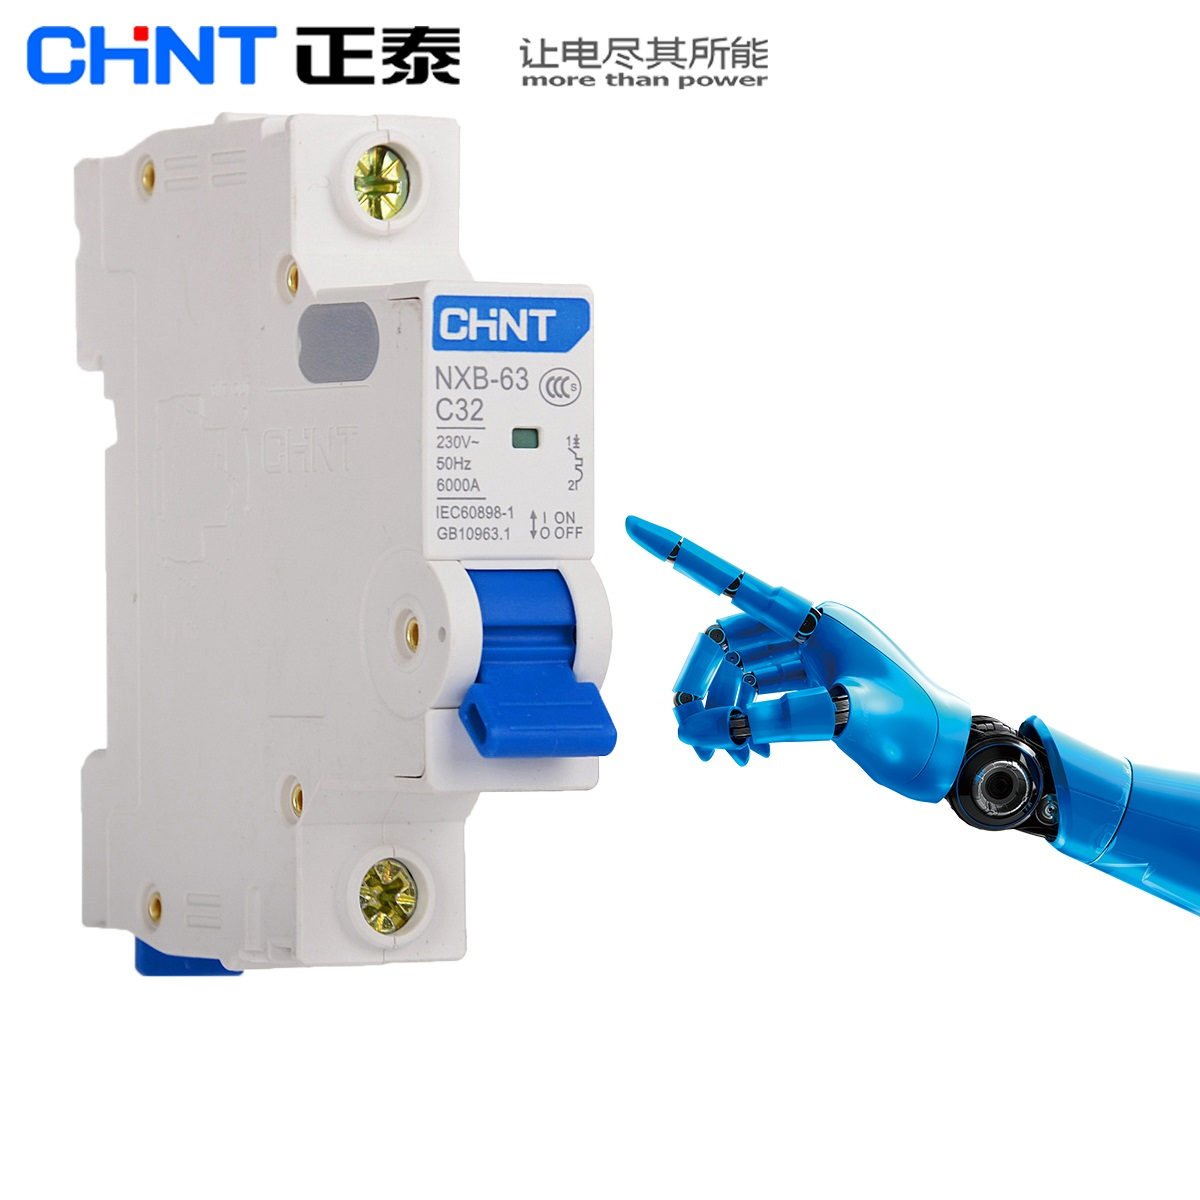 CHINT NXB-63 1A 2A 3A 6A 10A 16A 20A 25A 32A 40A 63A 1P 2P 3P 4P 230V 220V Miniature Circuit breaker MCB NEW DZ47 dz47 100h 63a 2p ac 230v or 400v mini circuit breaker mcb cutout switch breaker switch chopper 2pcs